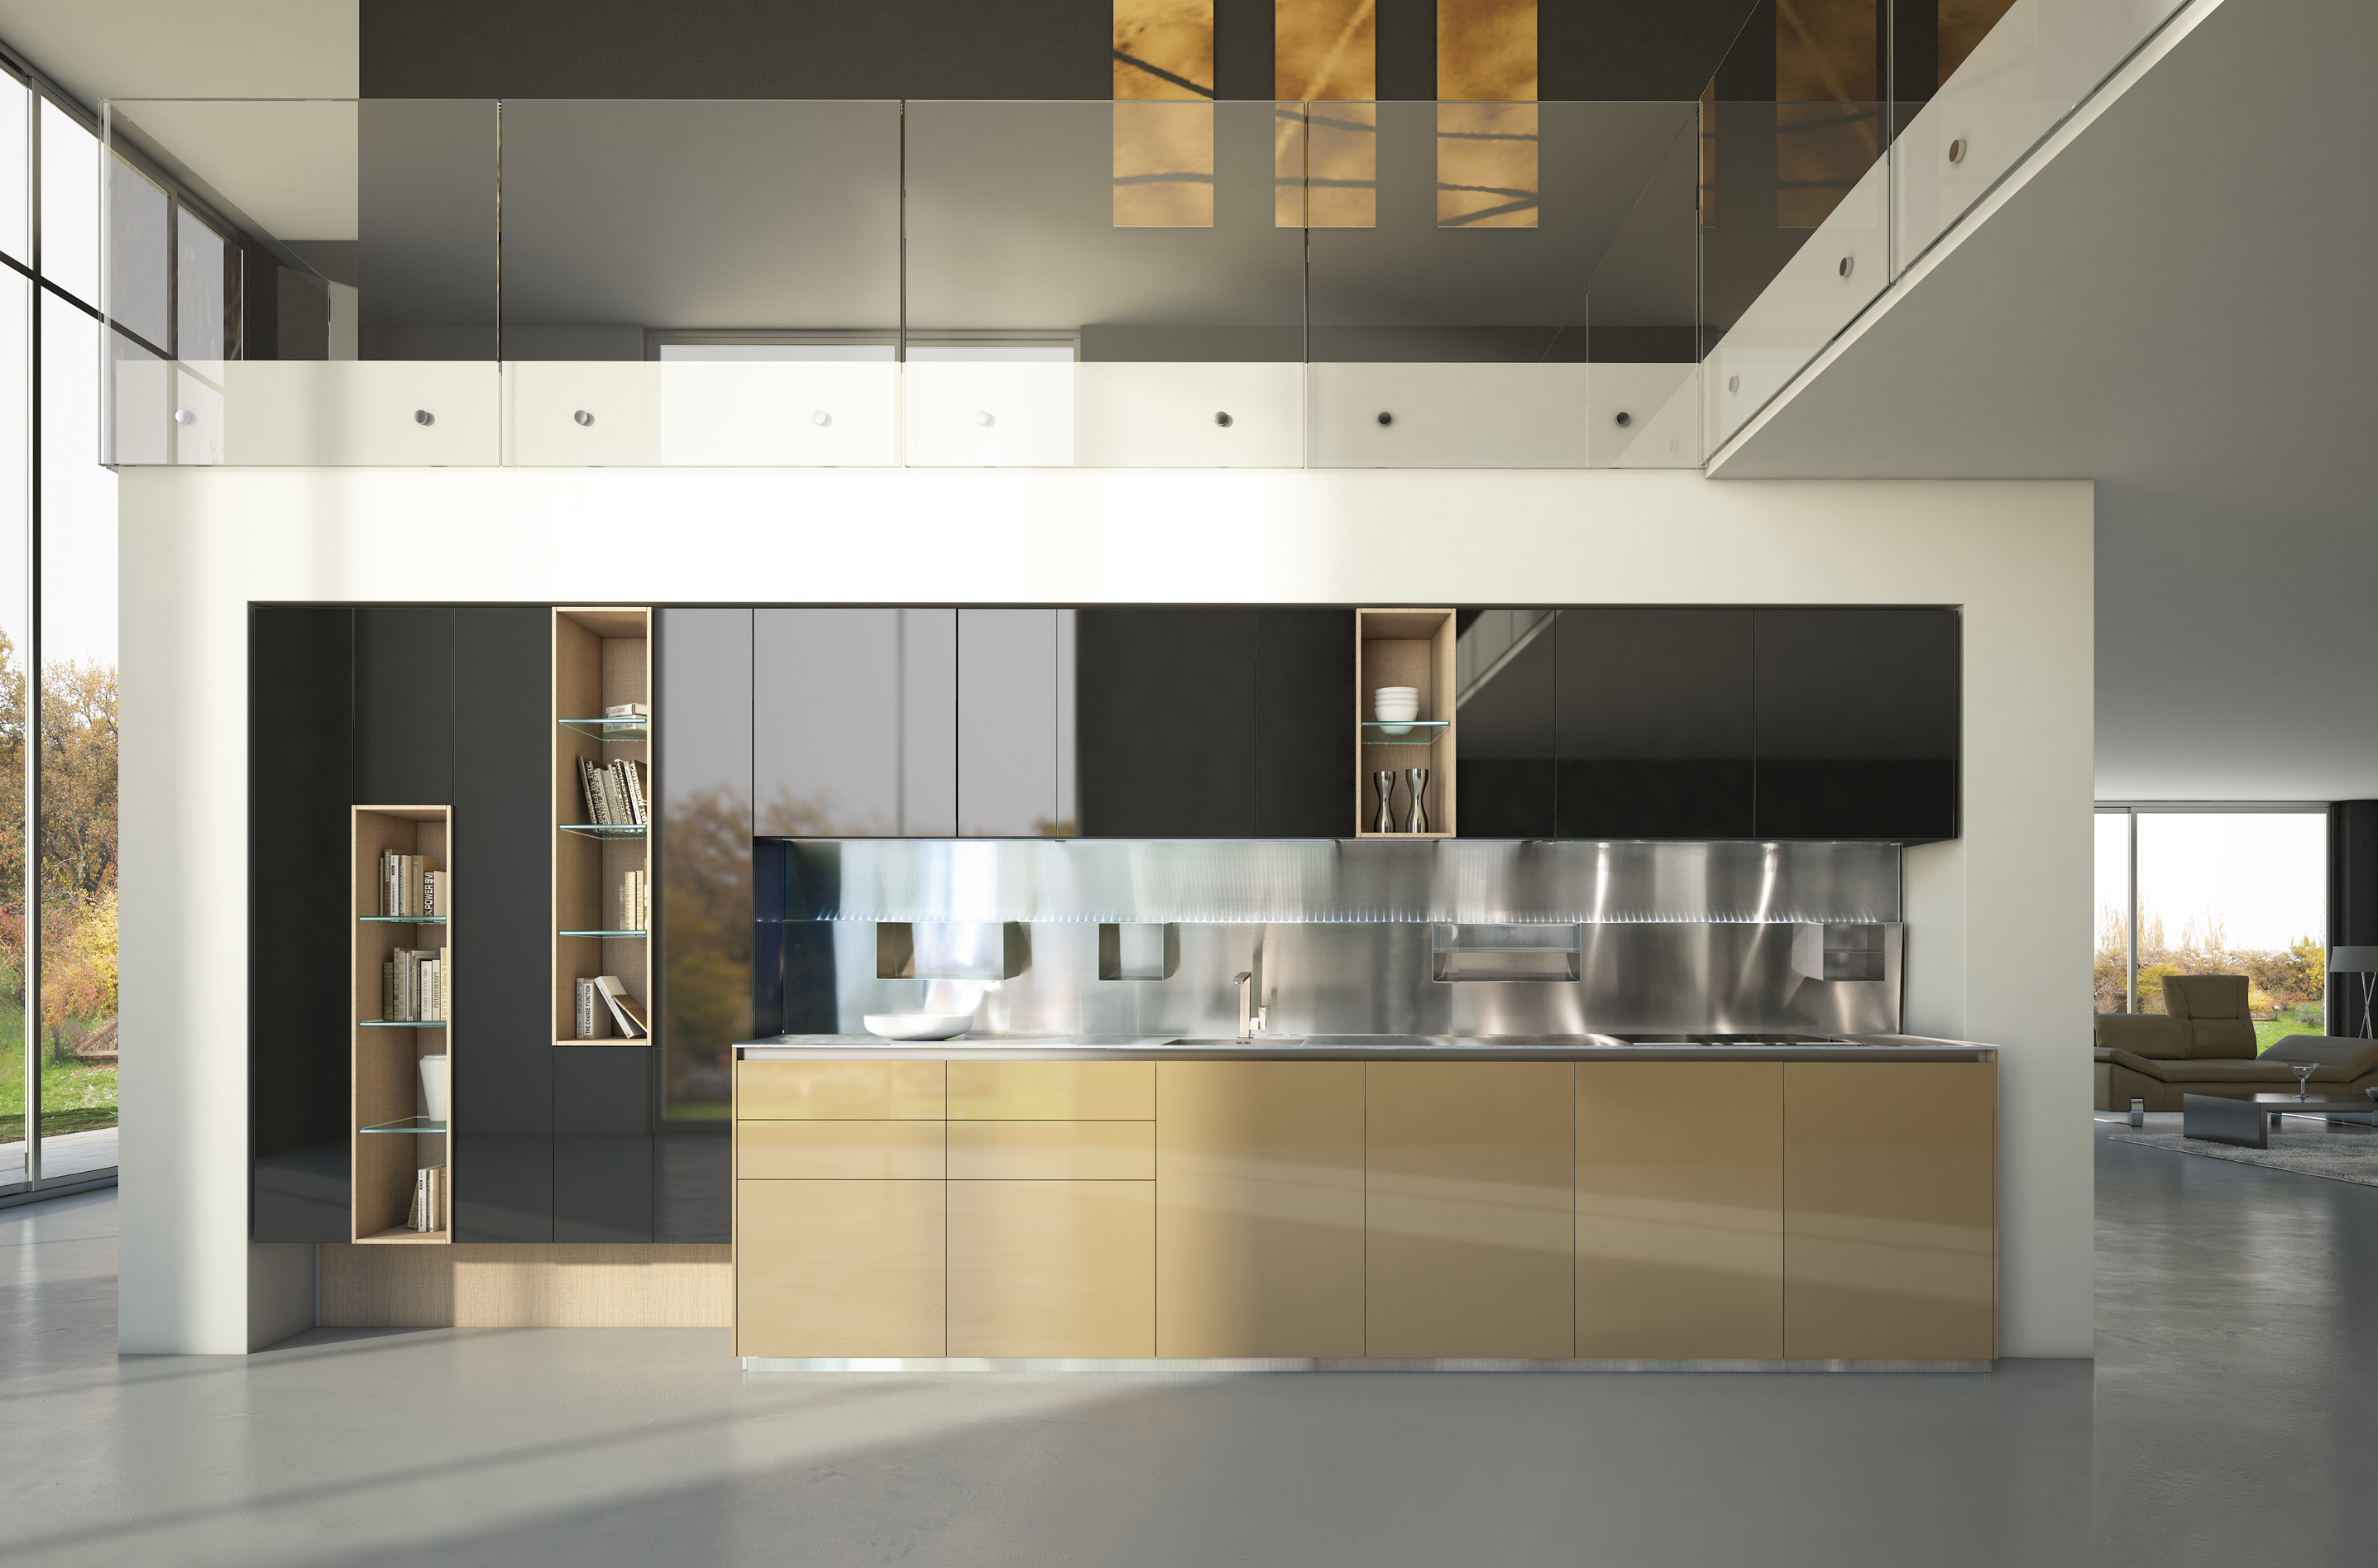 Brilliant Kitchen Cabinets by Scic - Decoholic